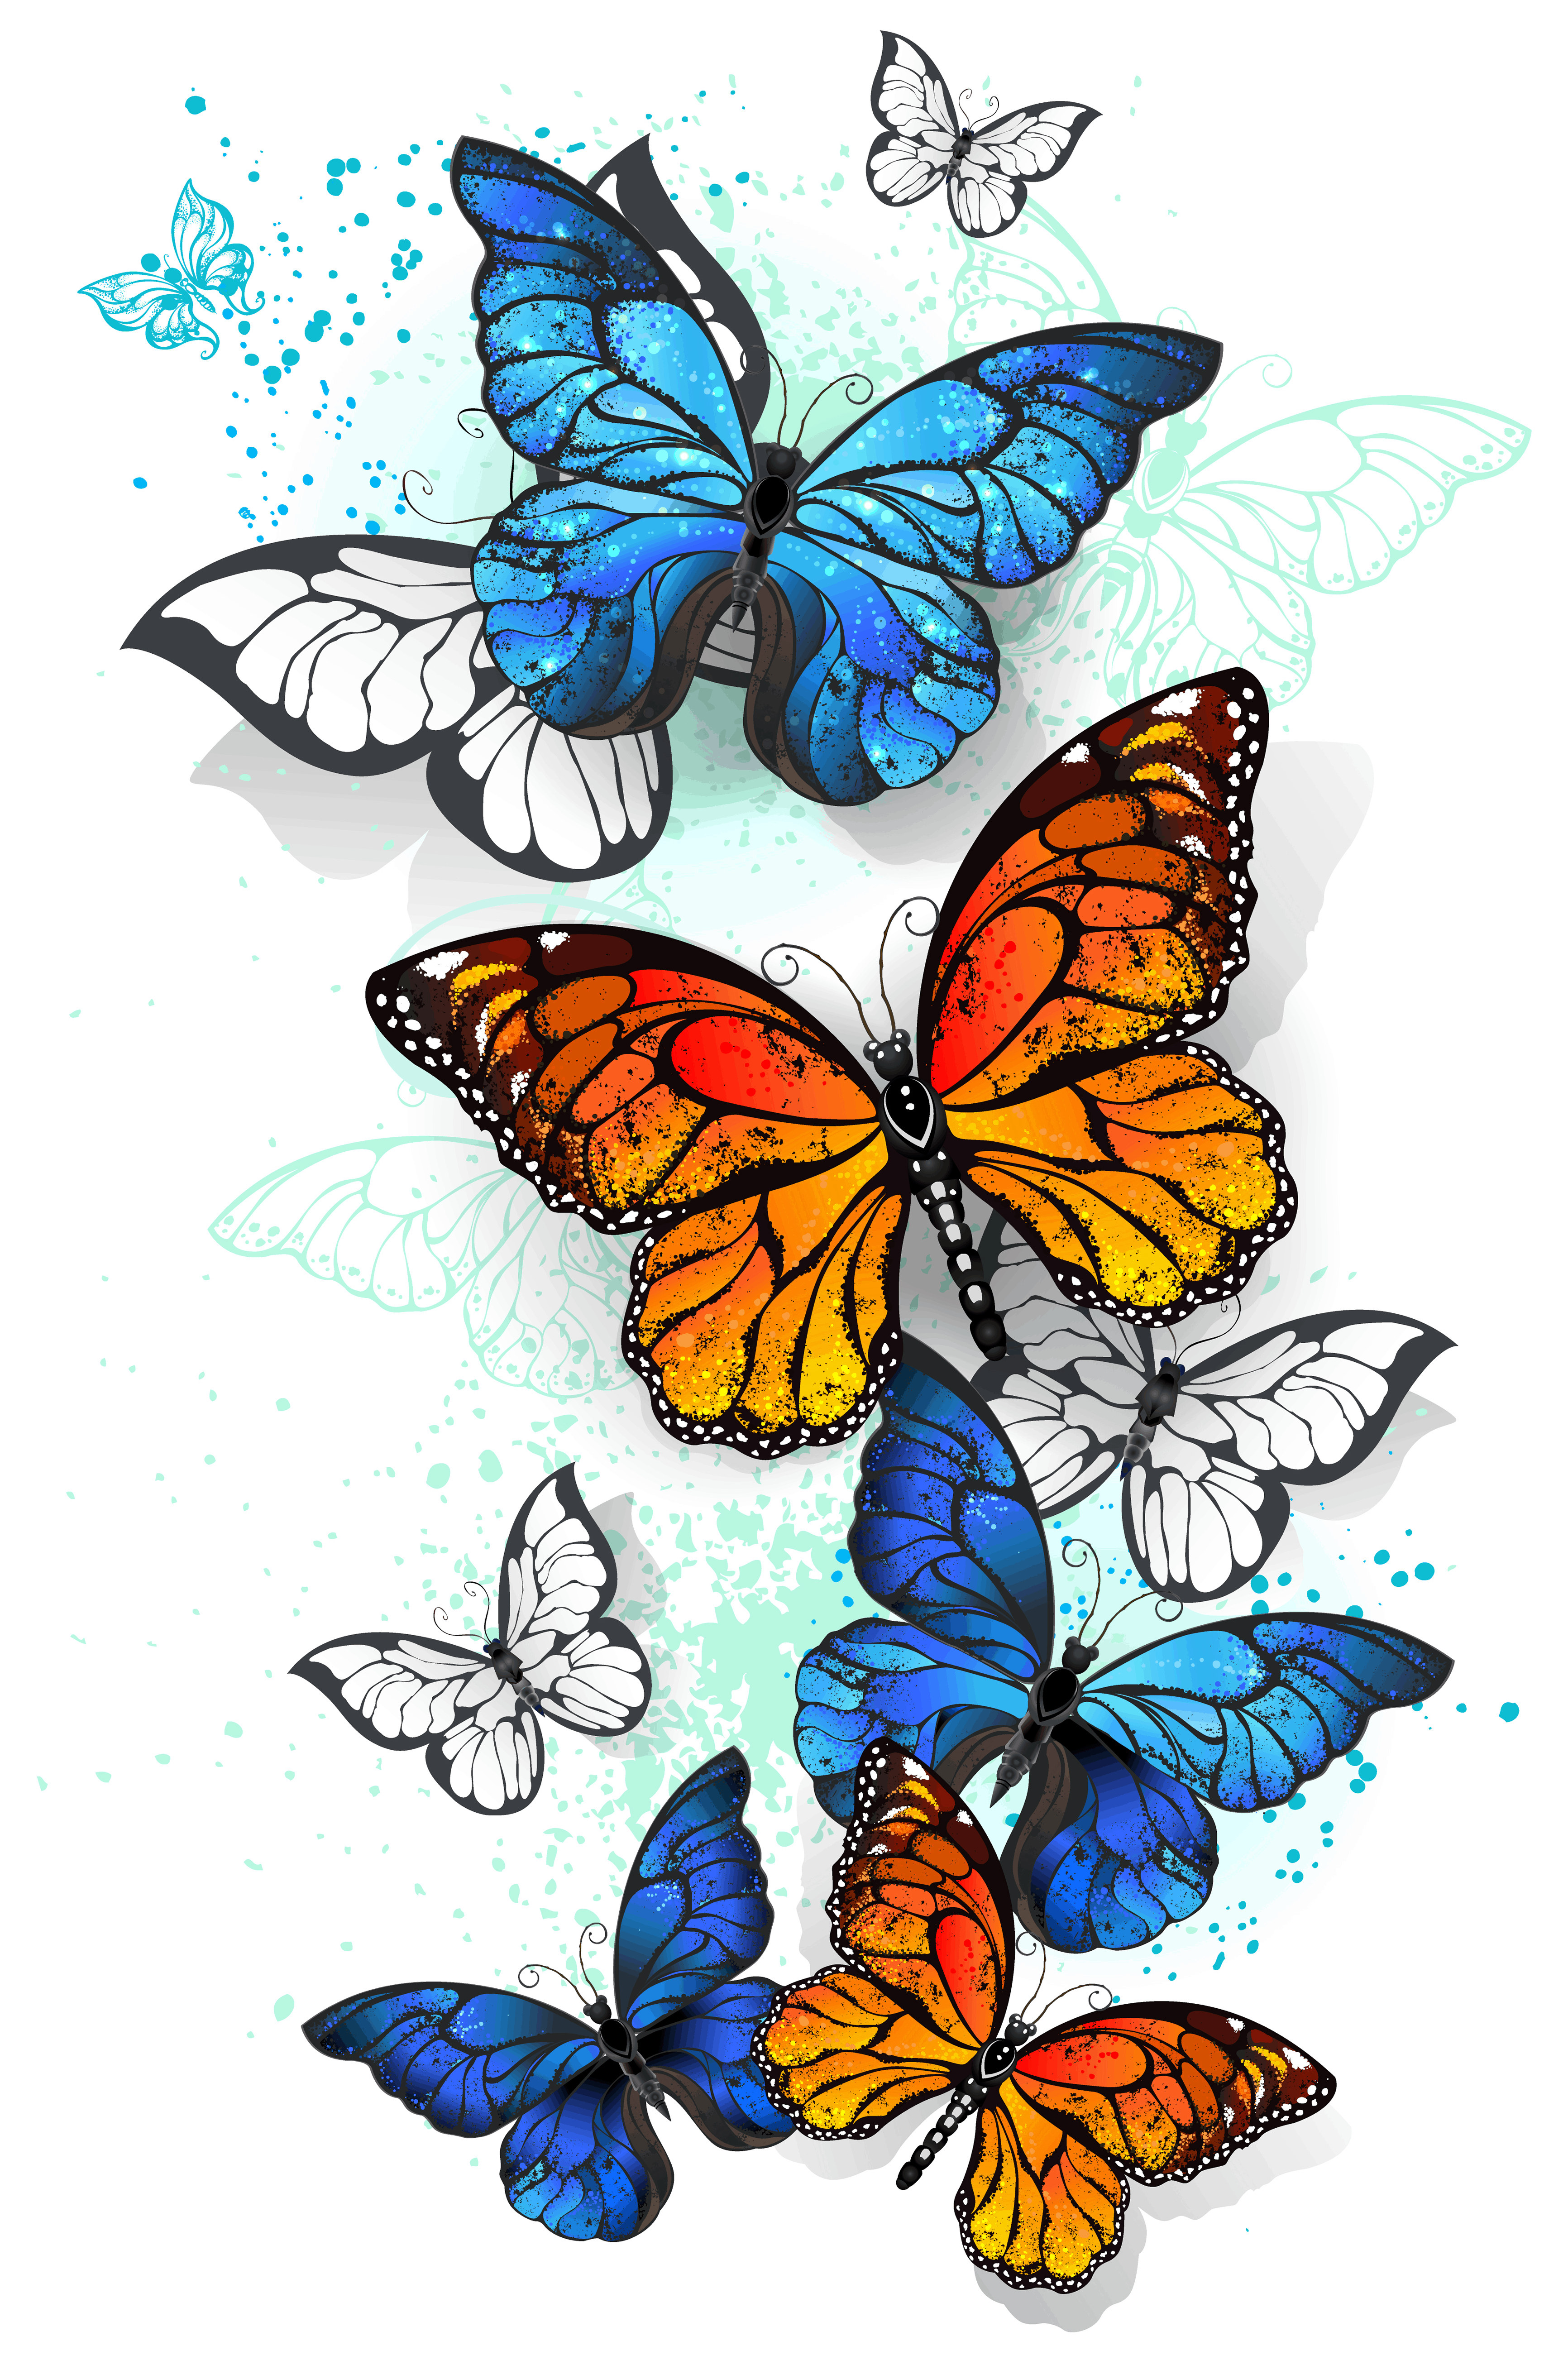 Butterfly Meaning and Symbolism Explained, Blue Morpho and Monarch Butterflies